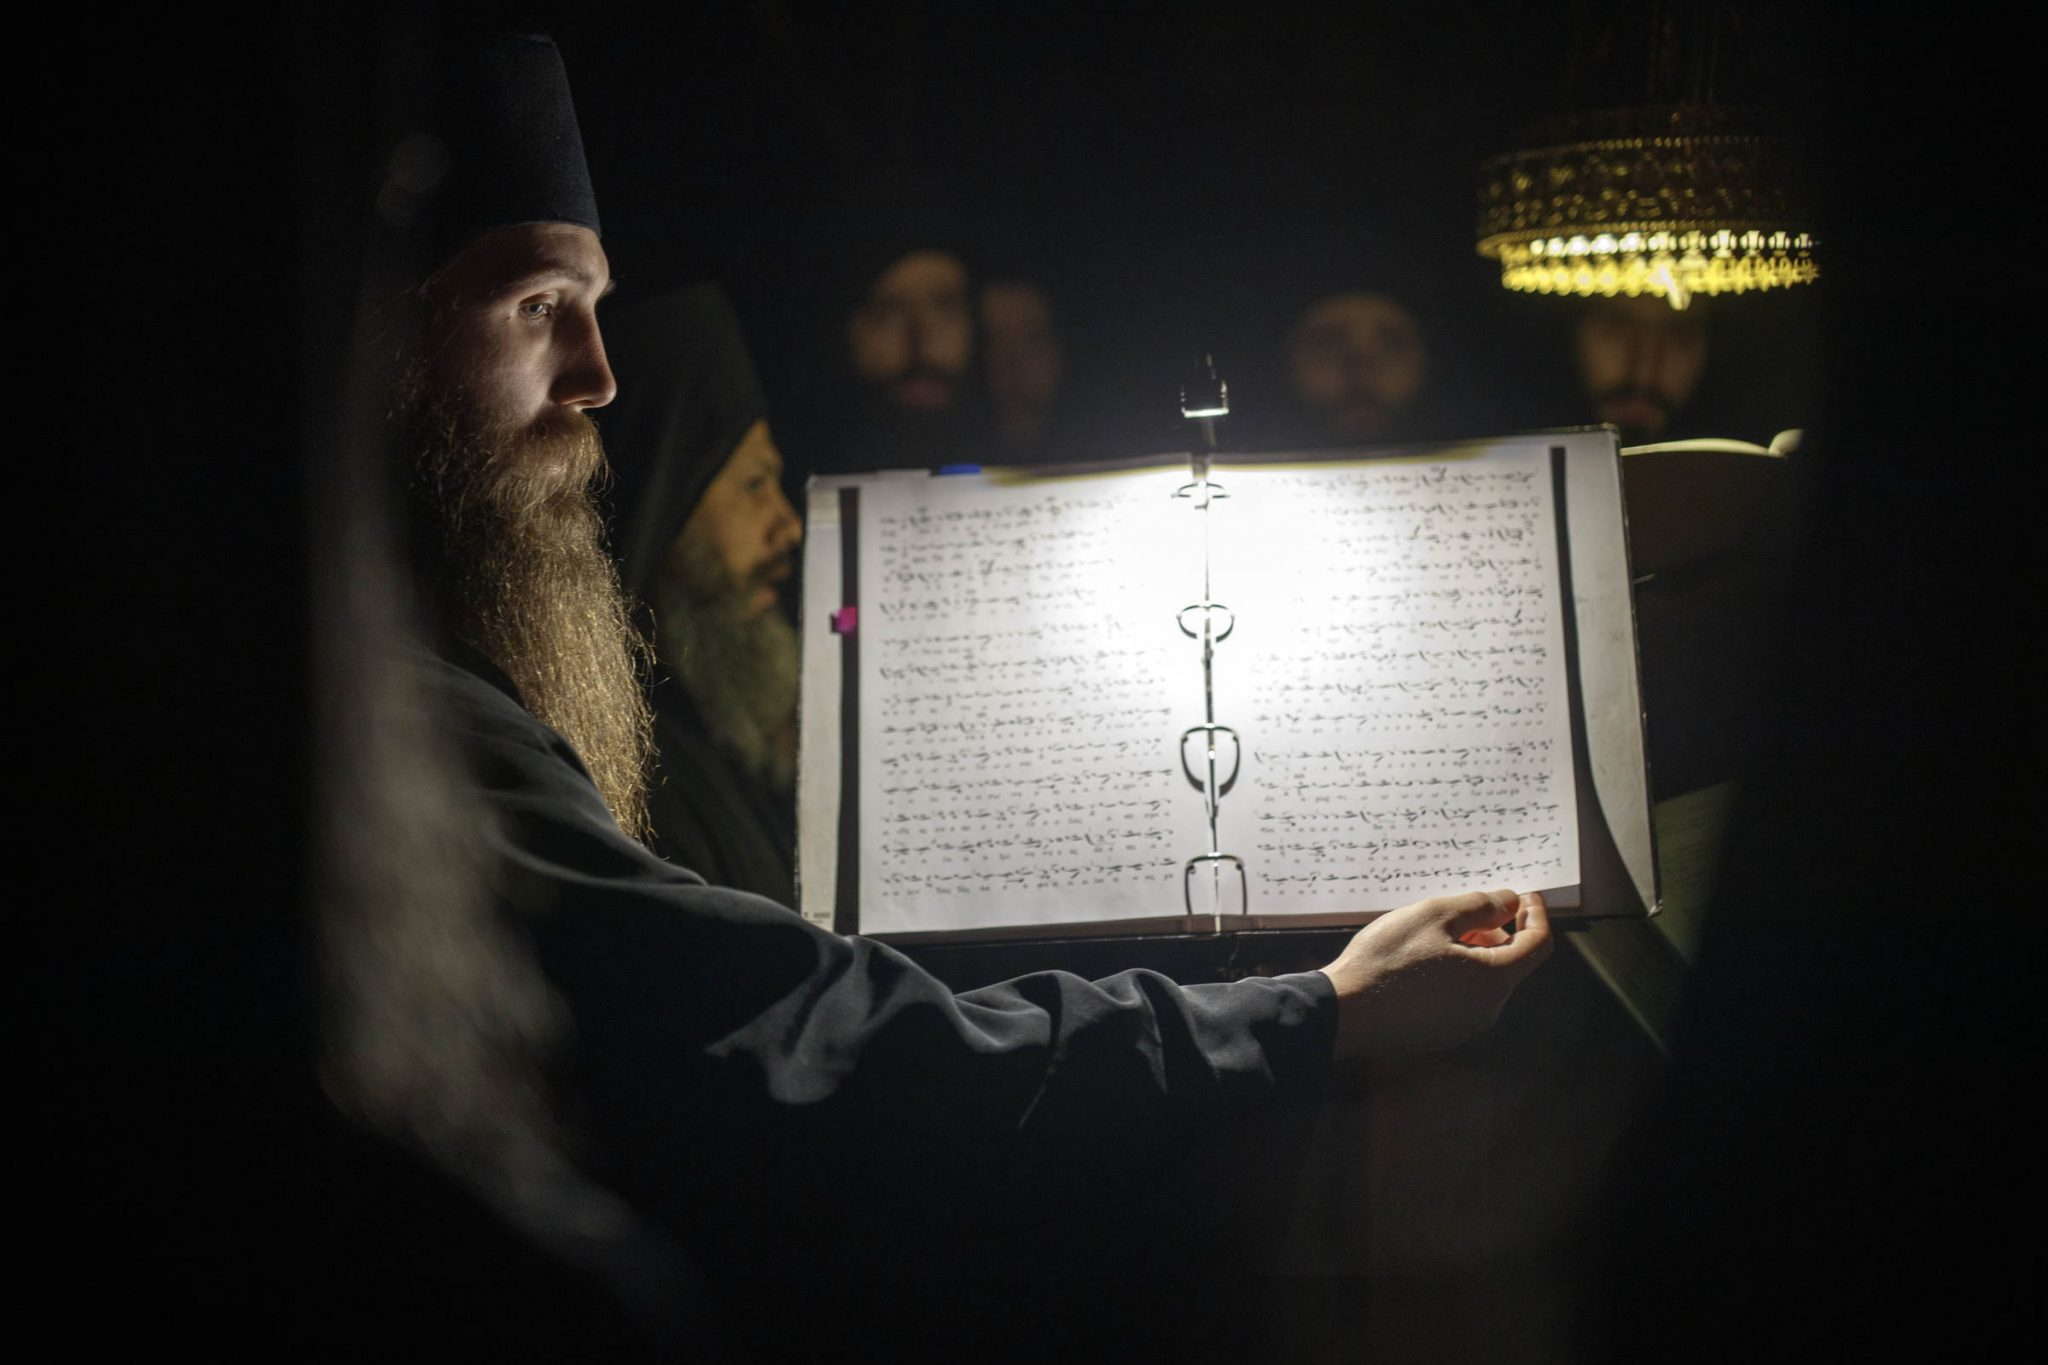 Byzantine Chant recognized by UNESCO as part of Cultural Heritage of Humanity